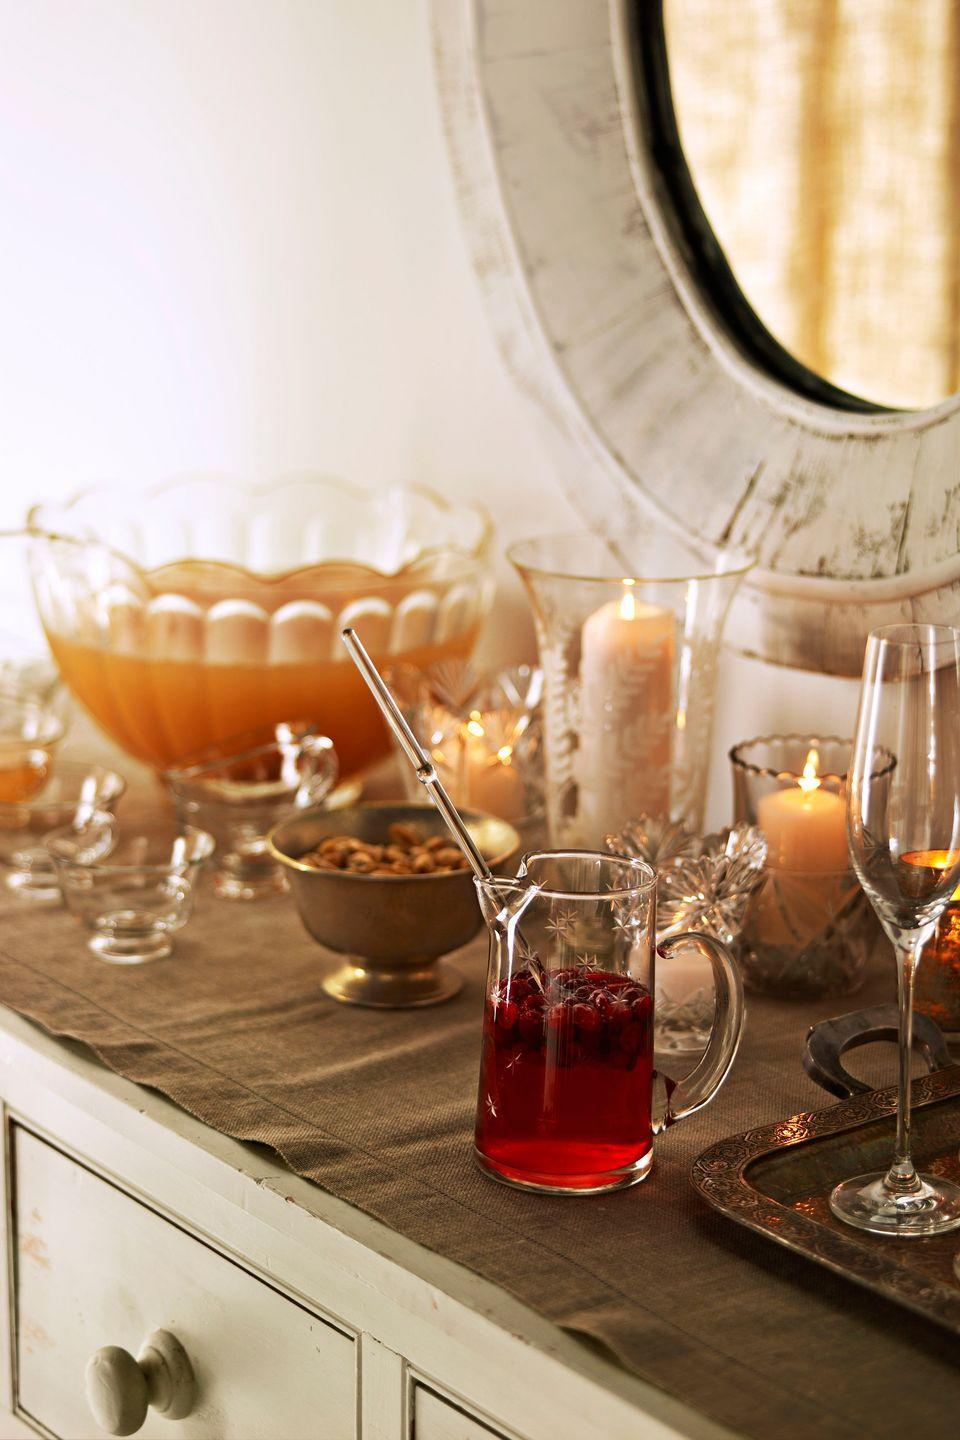 """<p>Heat apple cider, cinnamon, nutmeg, and ginger in a stockpot, then add bourbon to create a spiked tipple.</p><p><strong><a href=""""https://www.countryliving.com/food-drinks/recipes/a3290/warm-bourbon-cider-recipe/"""" rel=""""nofollow noopener"""" target=""""_blank"""" data-ylk=""""slk:Get the recipe"""" class=""""link rapid-noclick-resp"""">Get the recipe</a>.</strong> </p>"""